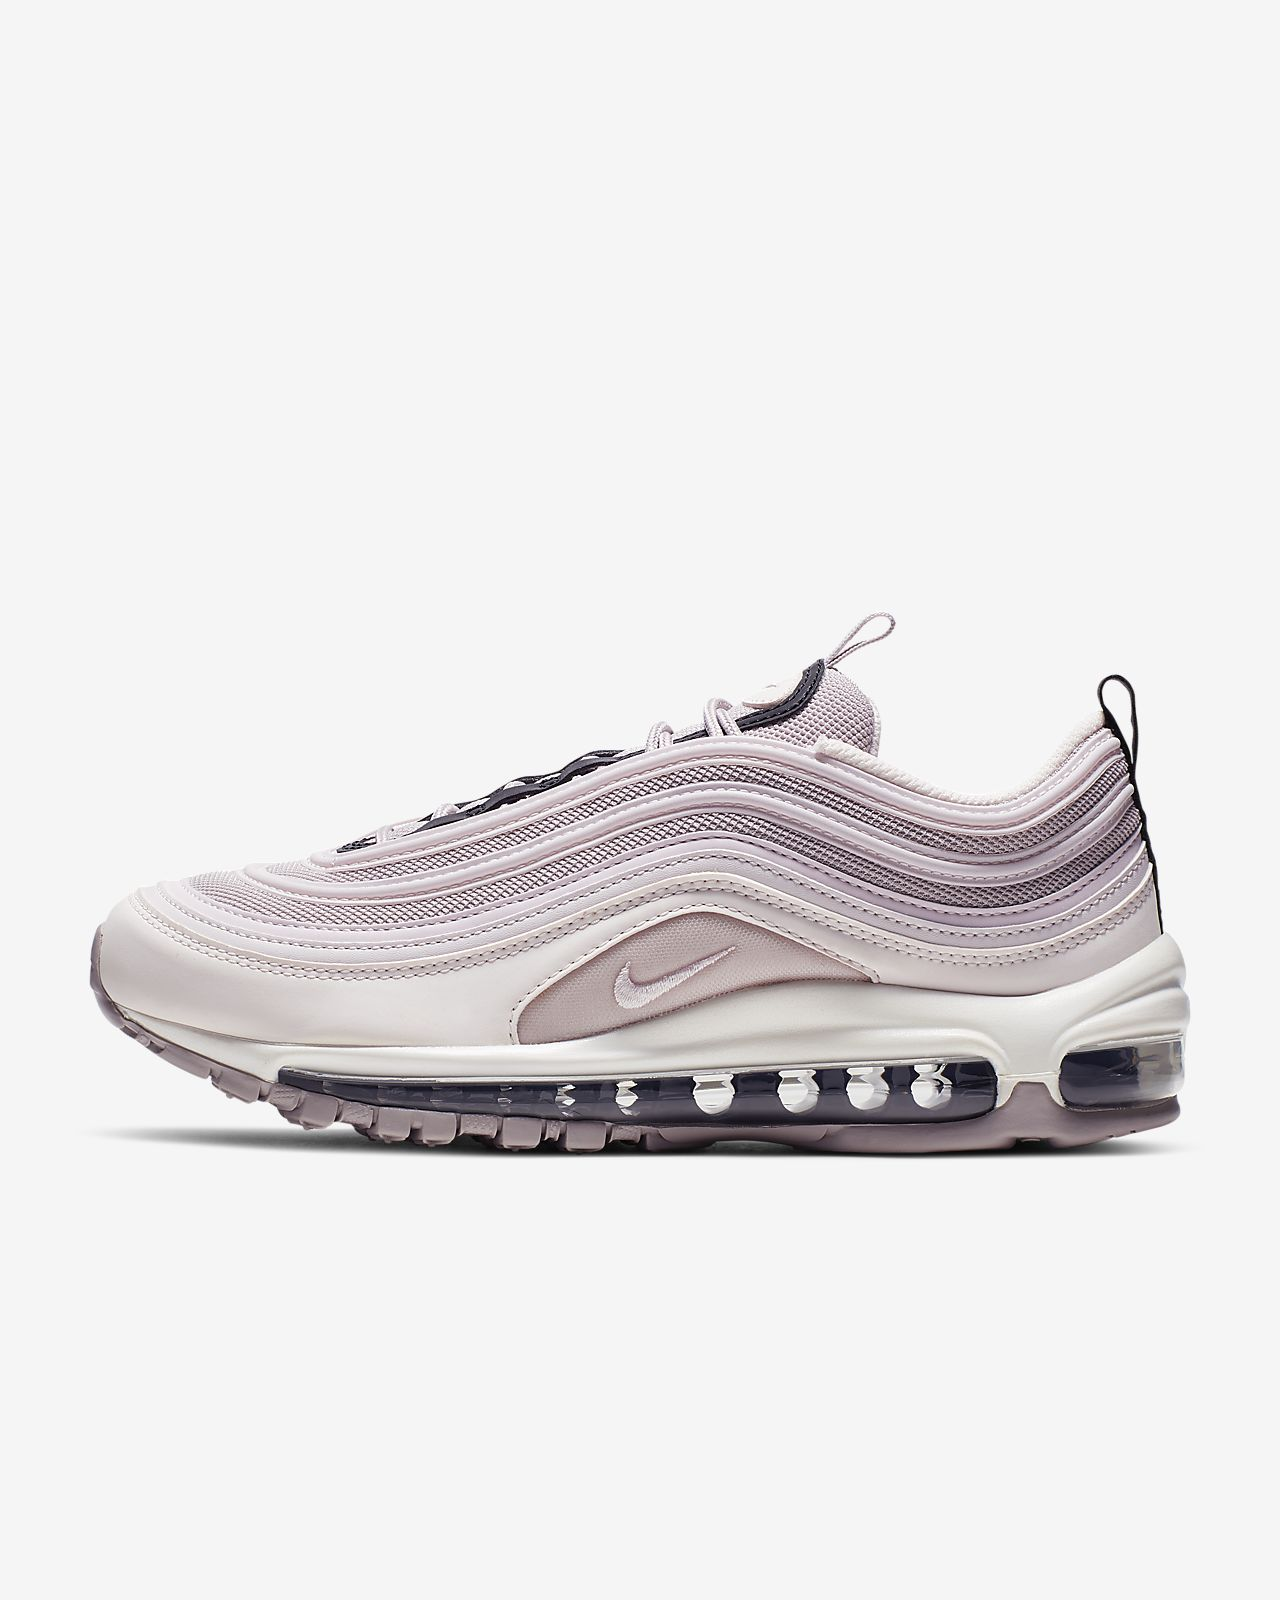 8c6b7aa6ca6 Nike Air Max 97 Women s Shoe. Nike.com NZ